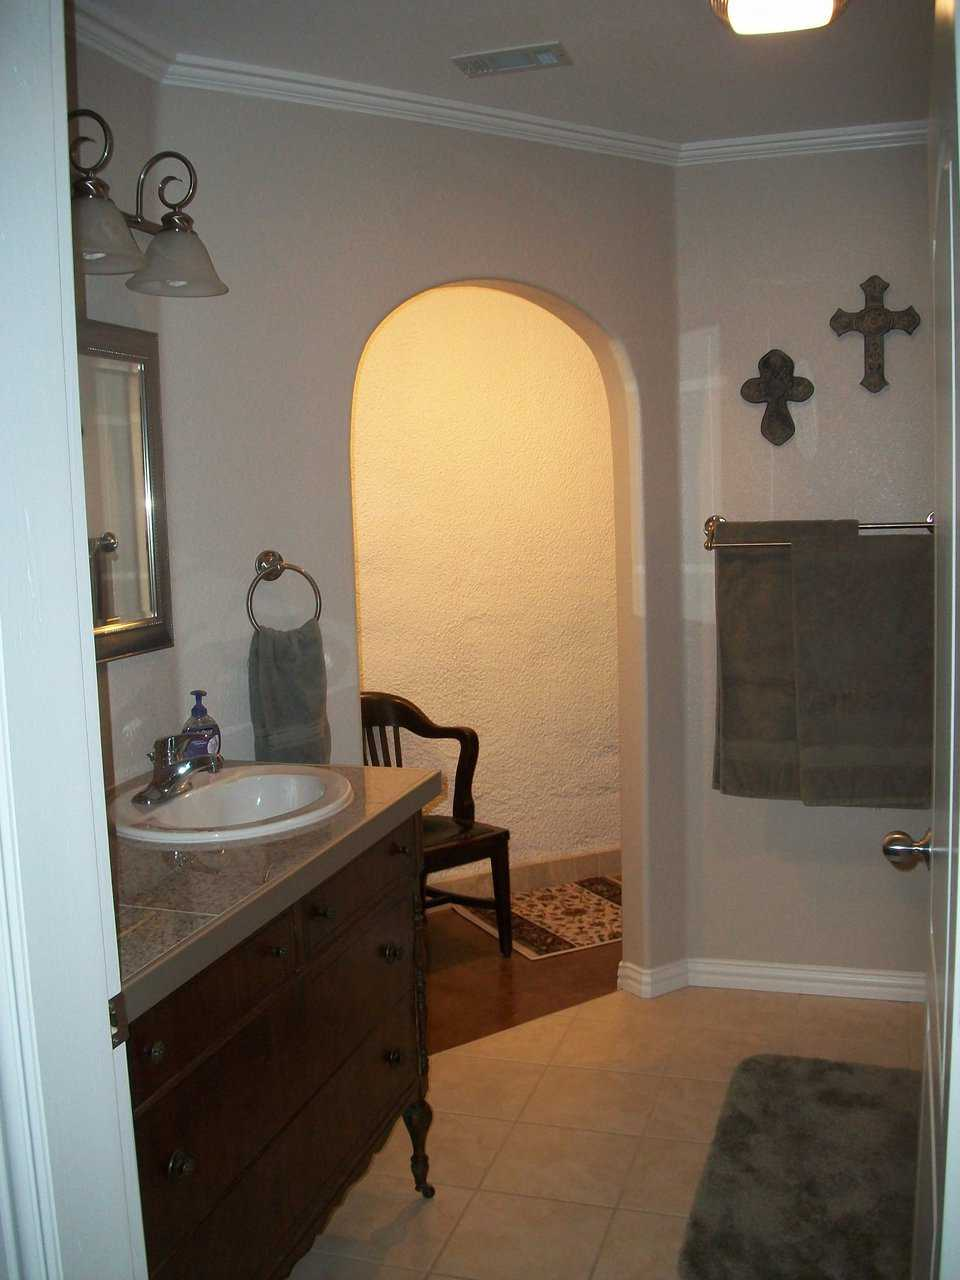 The master bath is roomy and elegant.